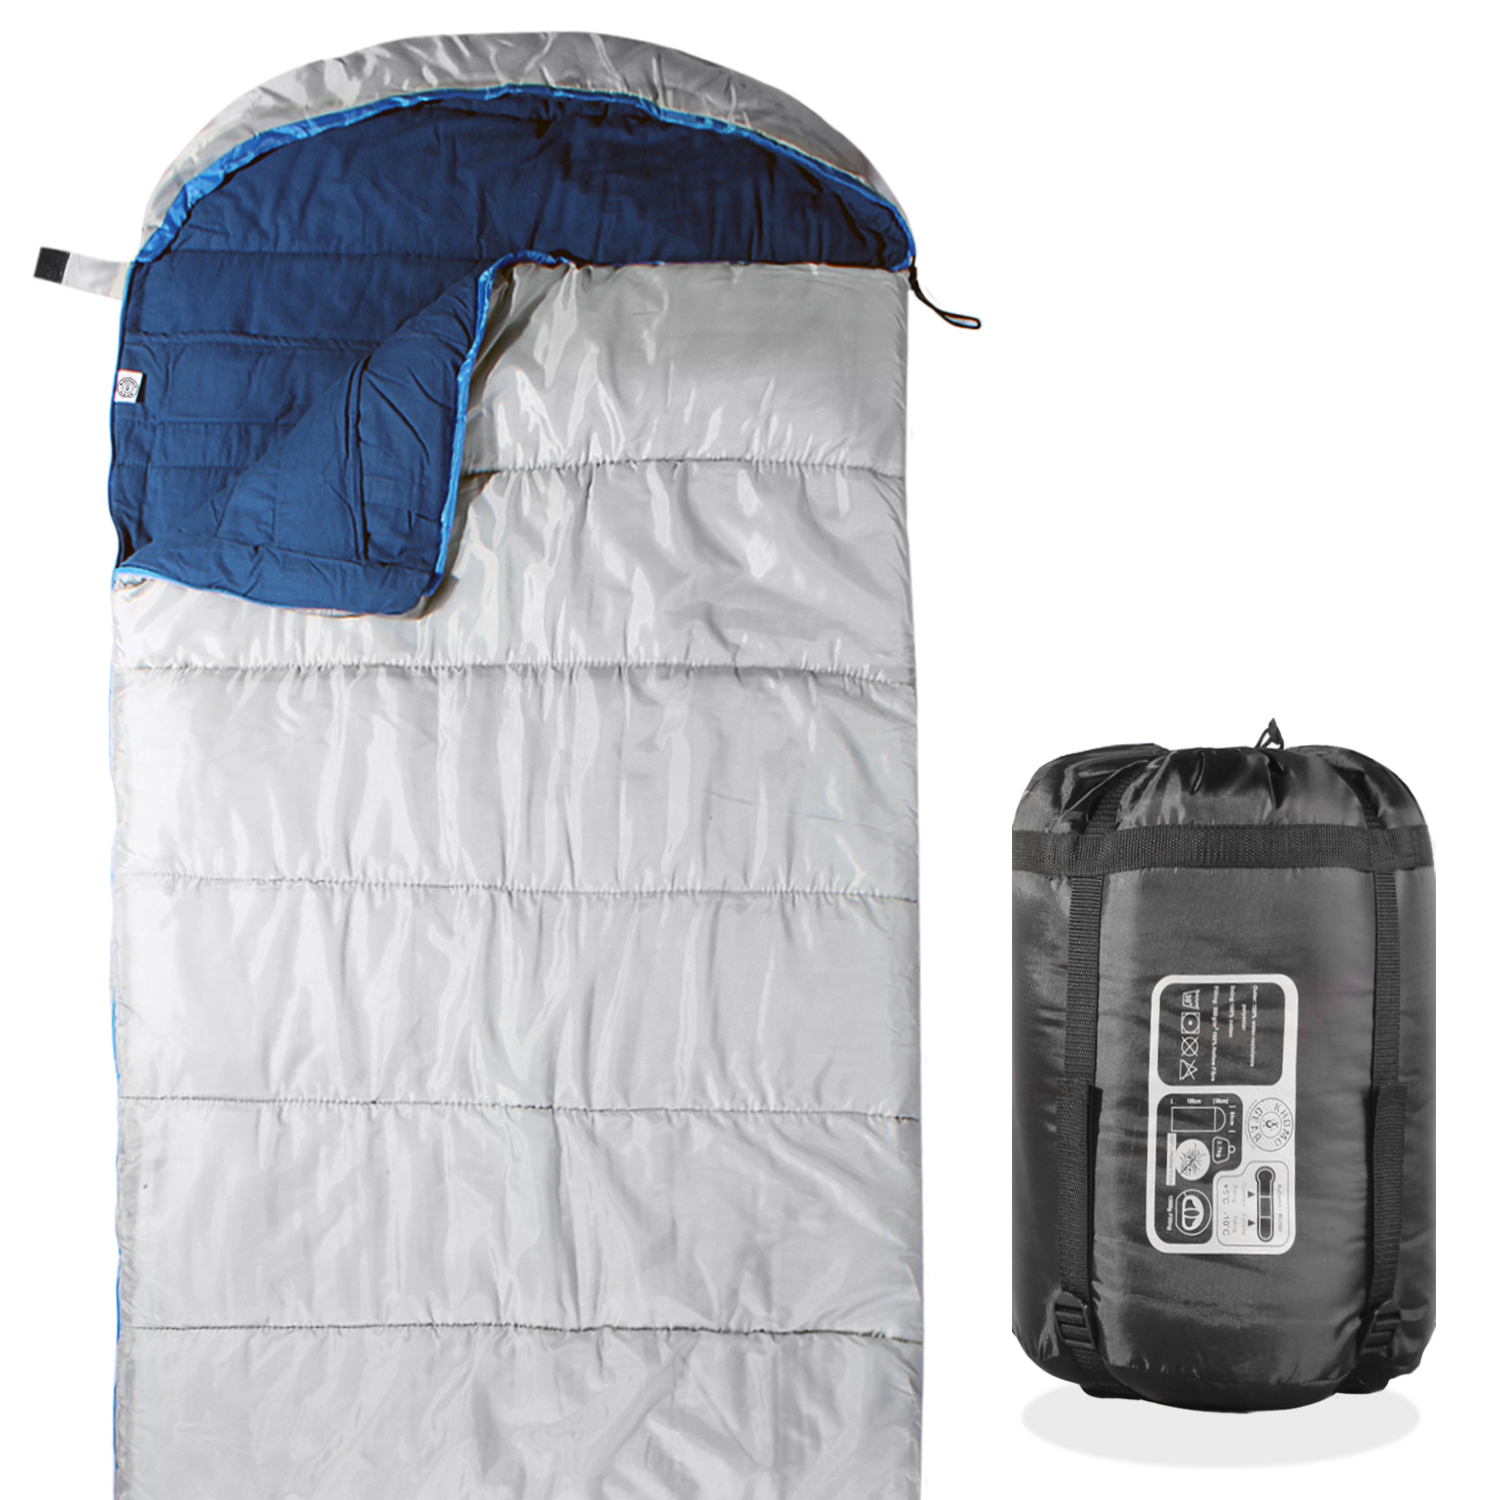 Khomo Gear 3 Season Sleeping Bag For Hiking Camping & Outdoor Activities by KHOMO GEAR